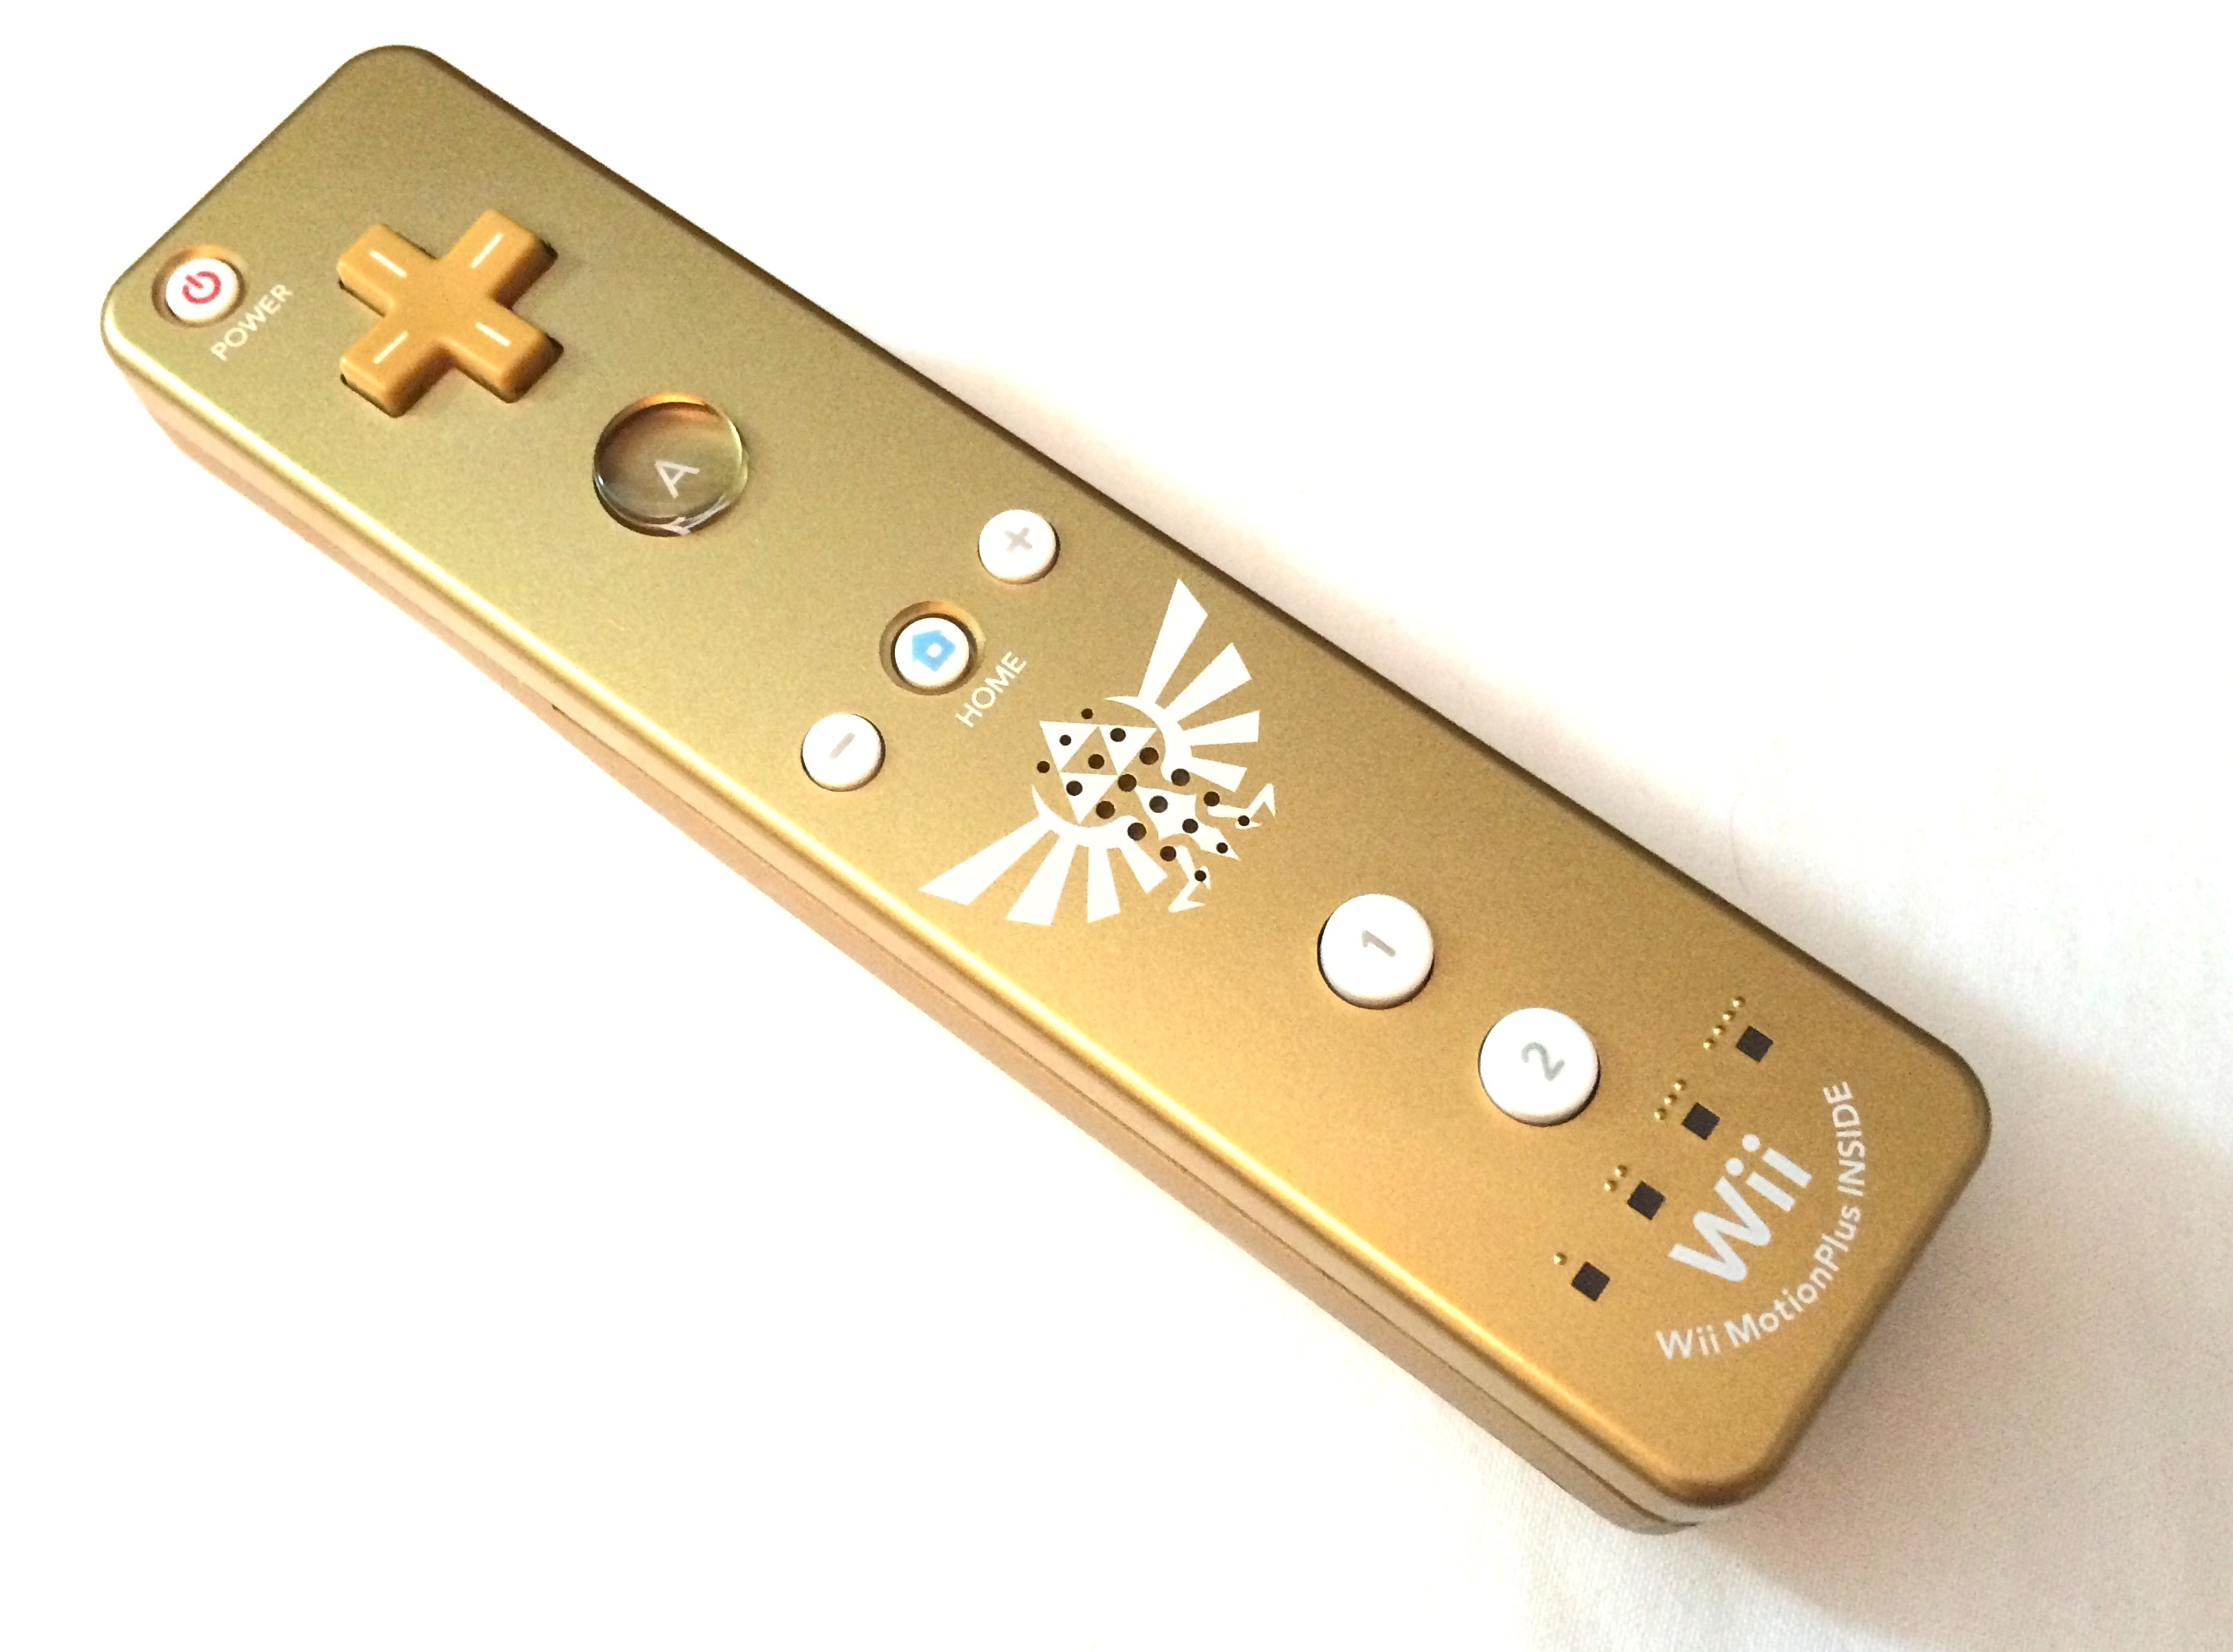 Zelda: skyward sword gold wii remote controller from limited.